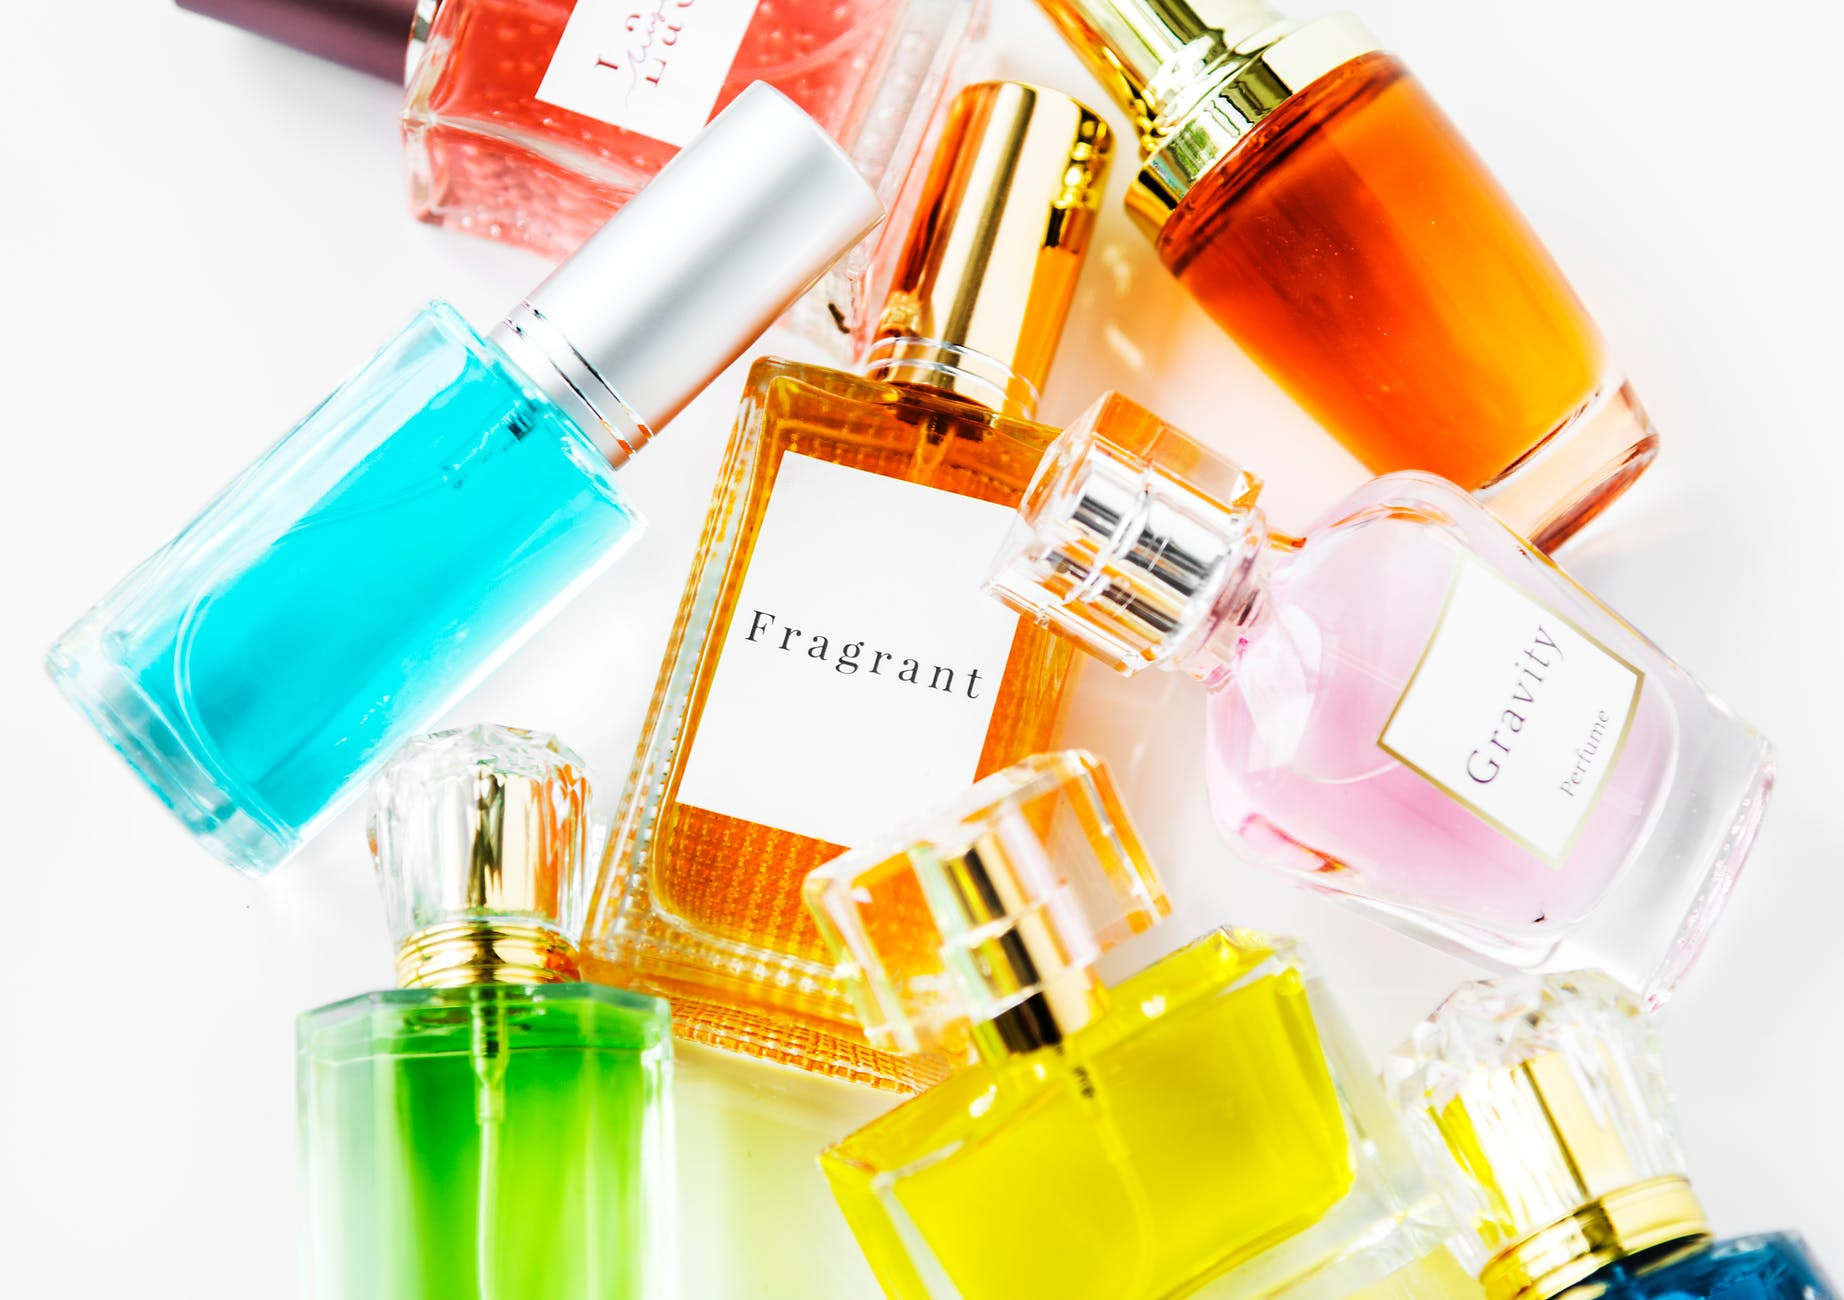 Rosacea from perfumes and cosmetics